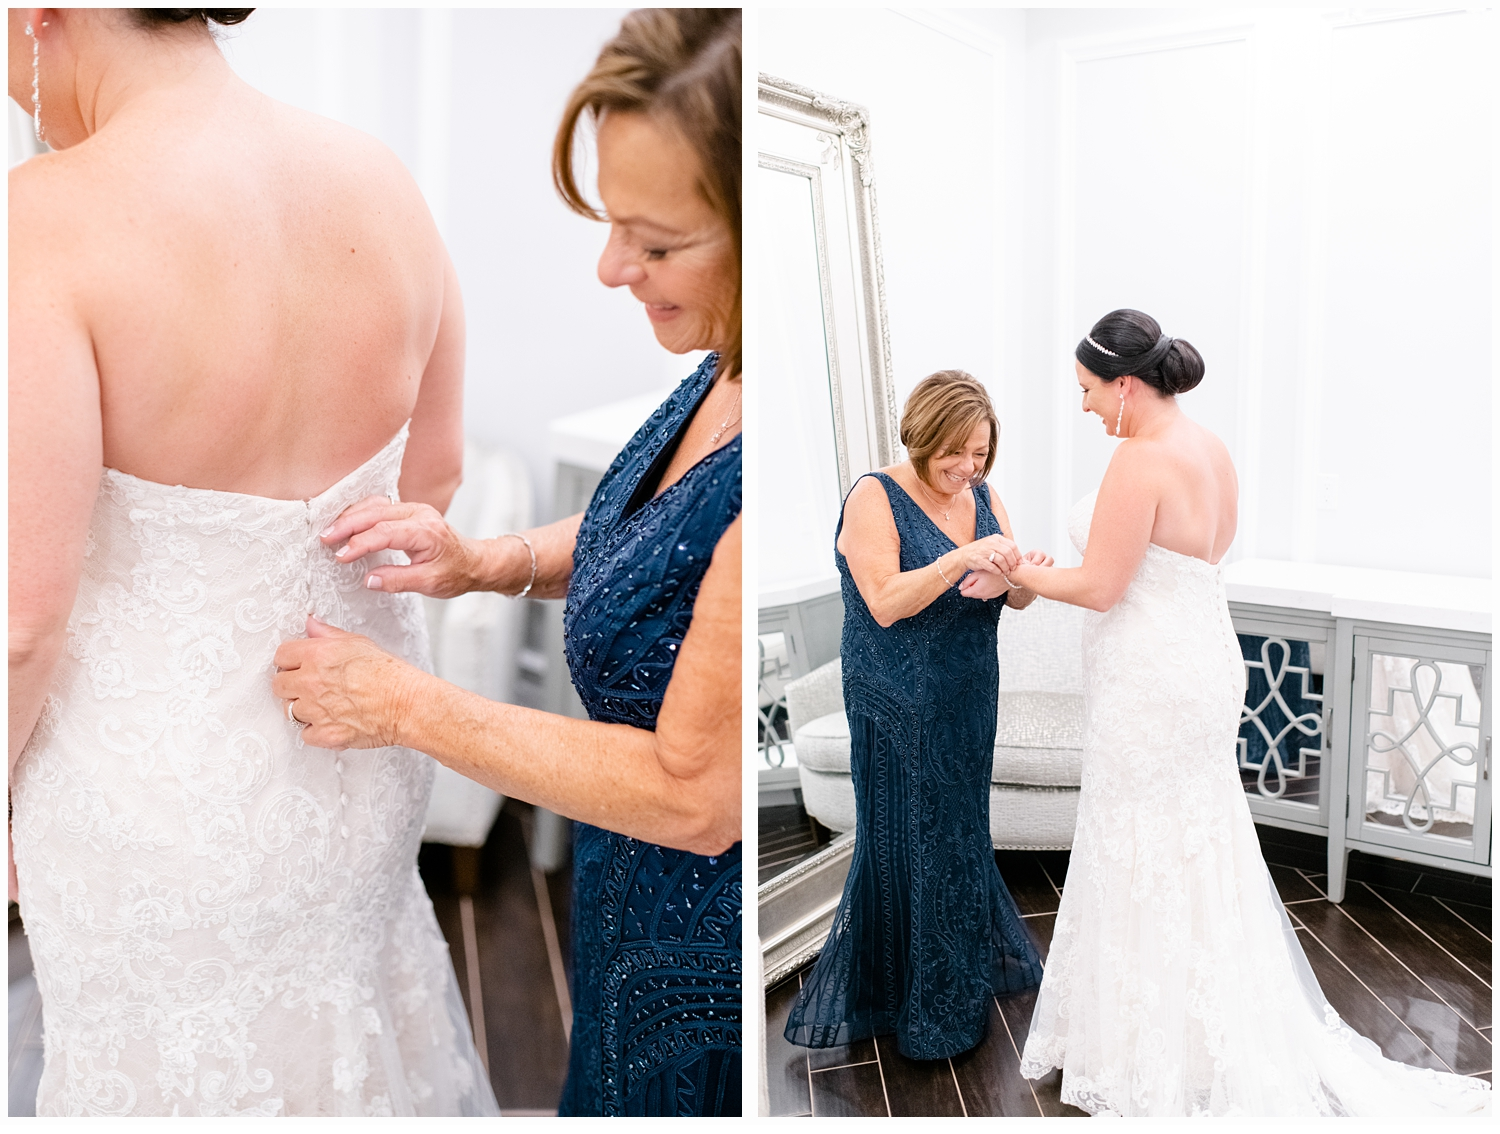 mom helping her daughter put on wedding gown